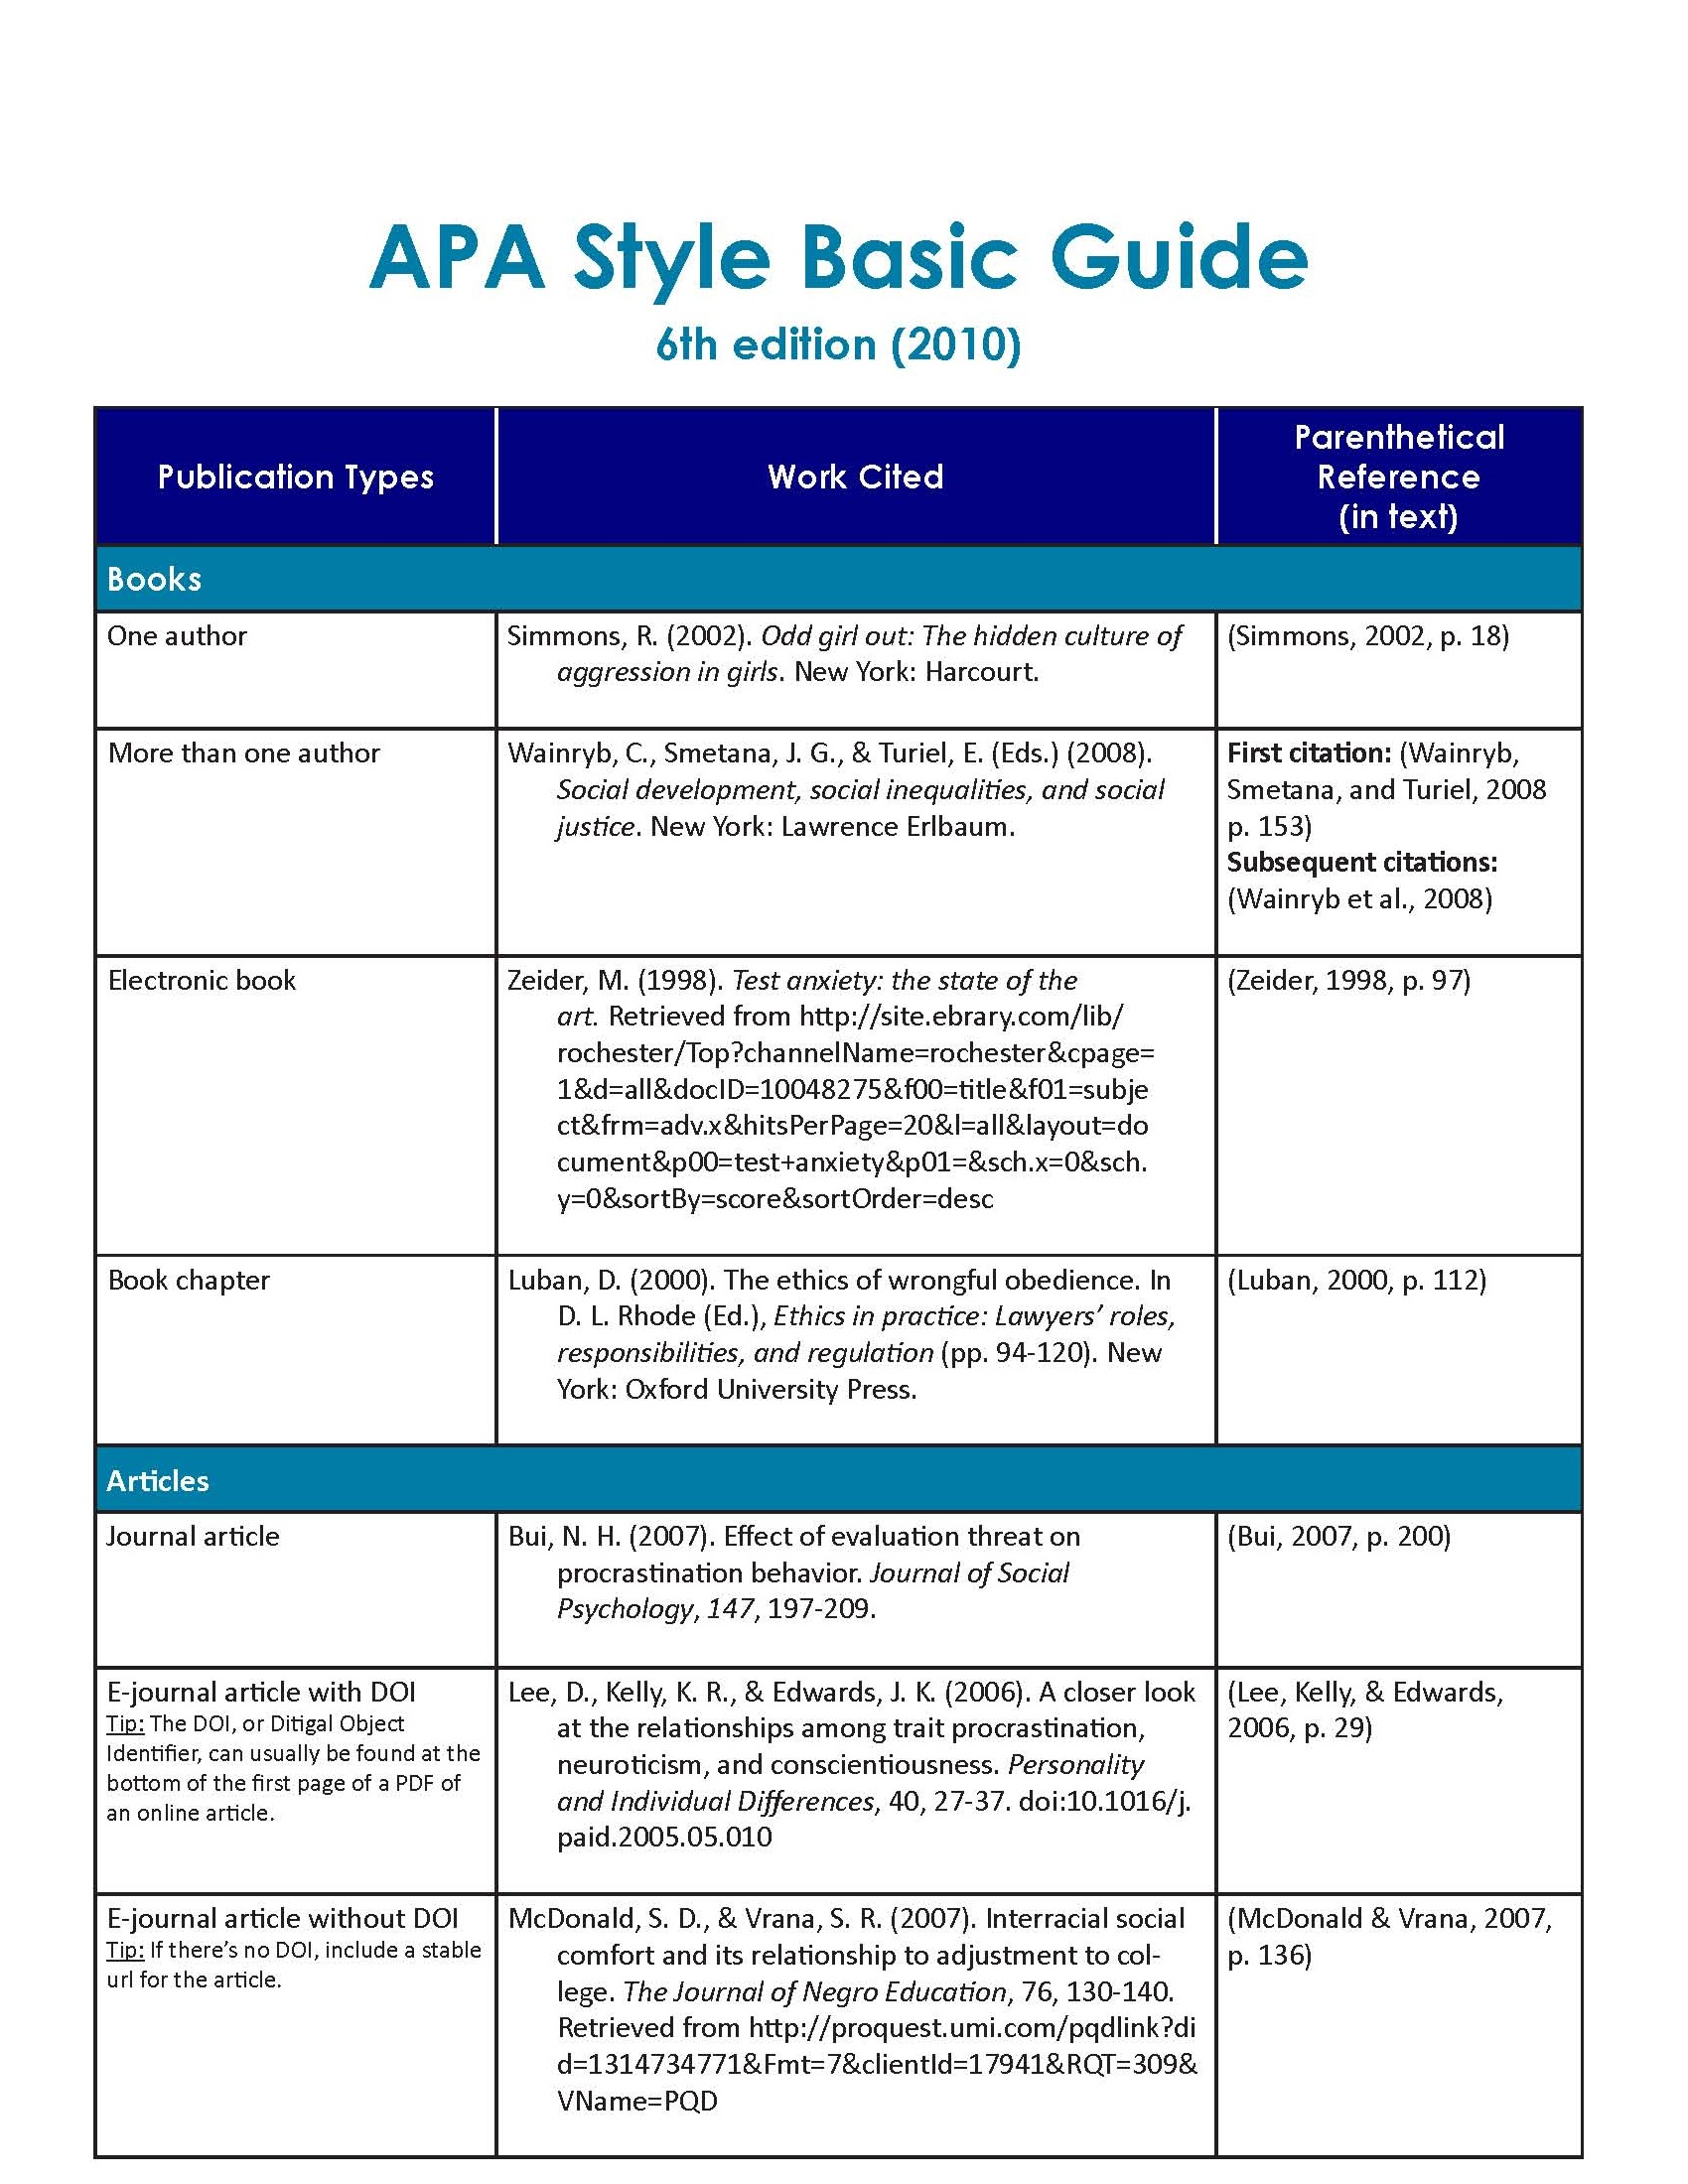 apa reference guide A guide to referencing in the apa style – updated 24 january 2013 page 11 personal communication include the words personal communication and the full date of the communication.